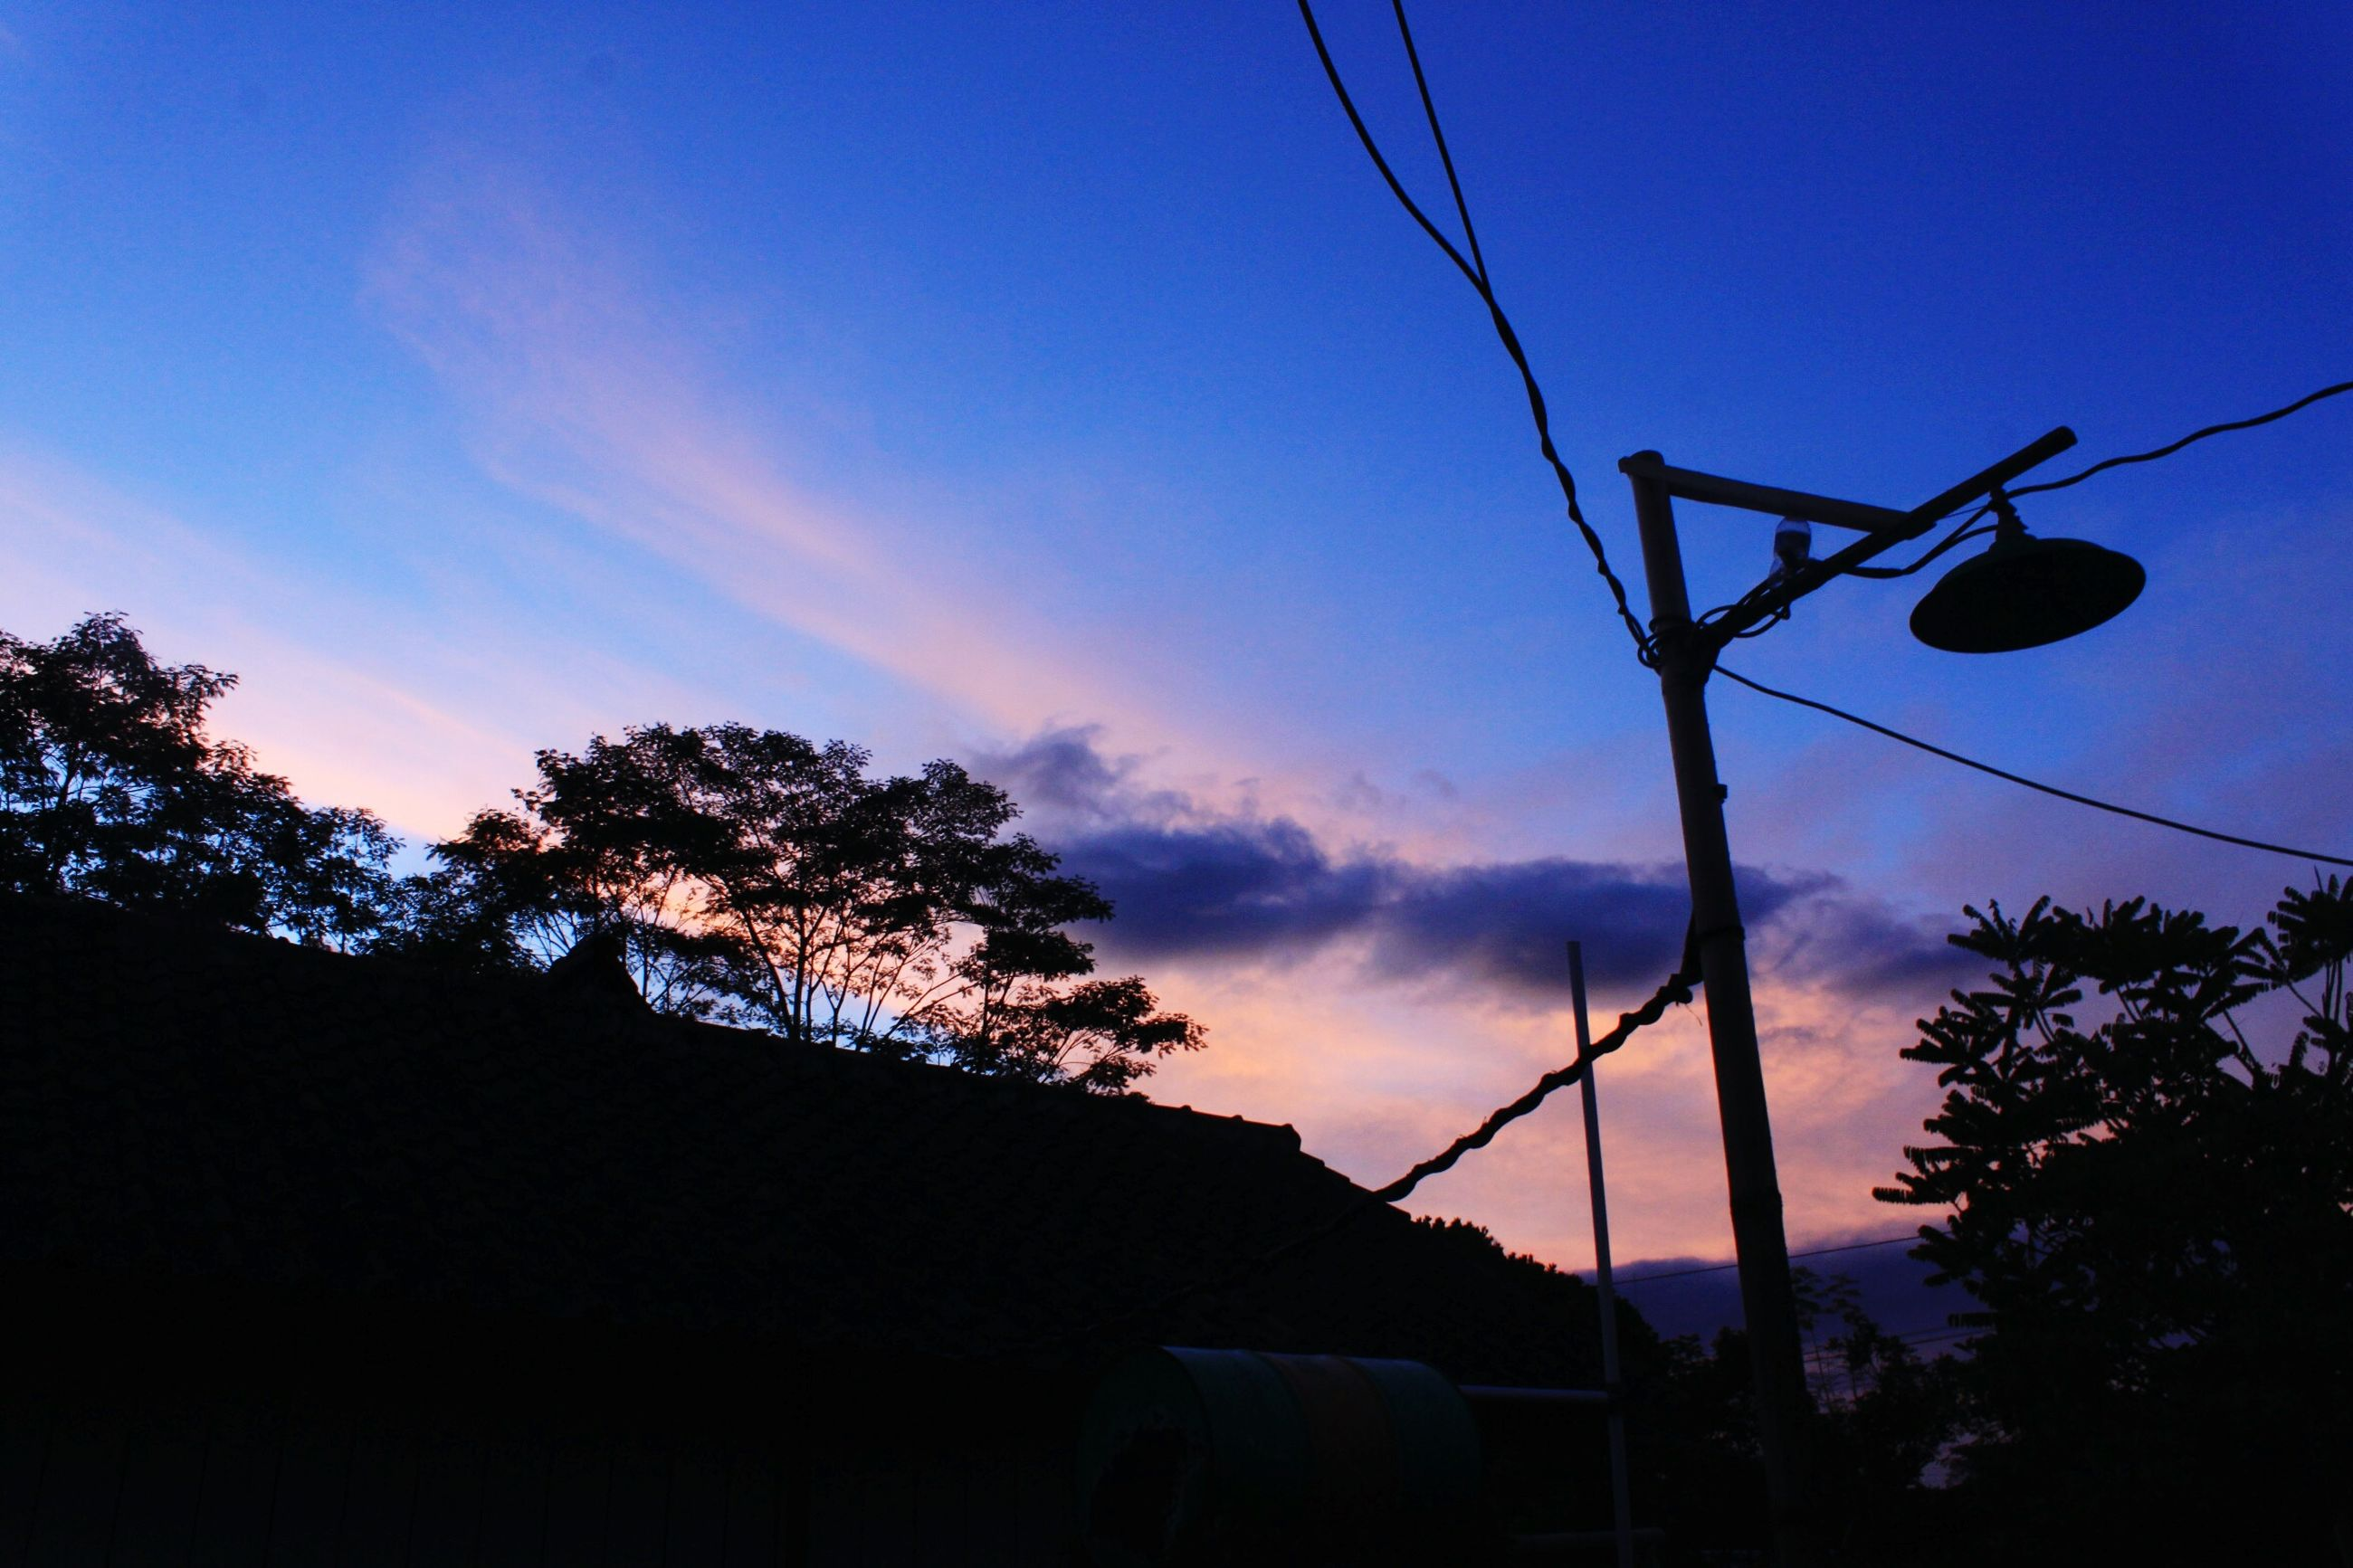 silhouette, low angle view, sunset, power line, sky, tree, electricity pylon, electricity, cable, blue, power supply, street light, dusk, nature, connection, power cable, beauty in nature, outdoors, built structure, tranquility